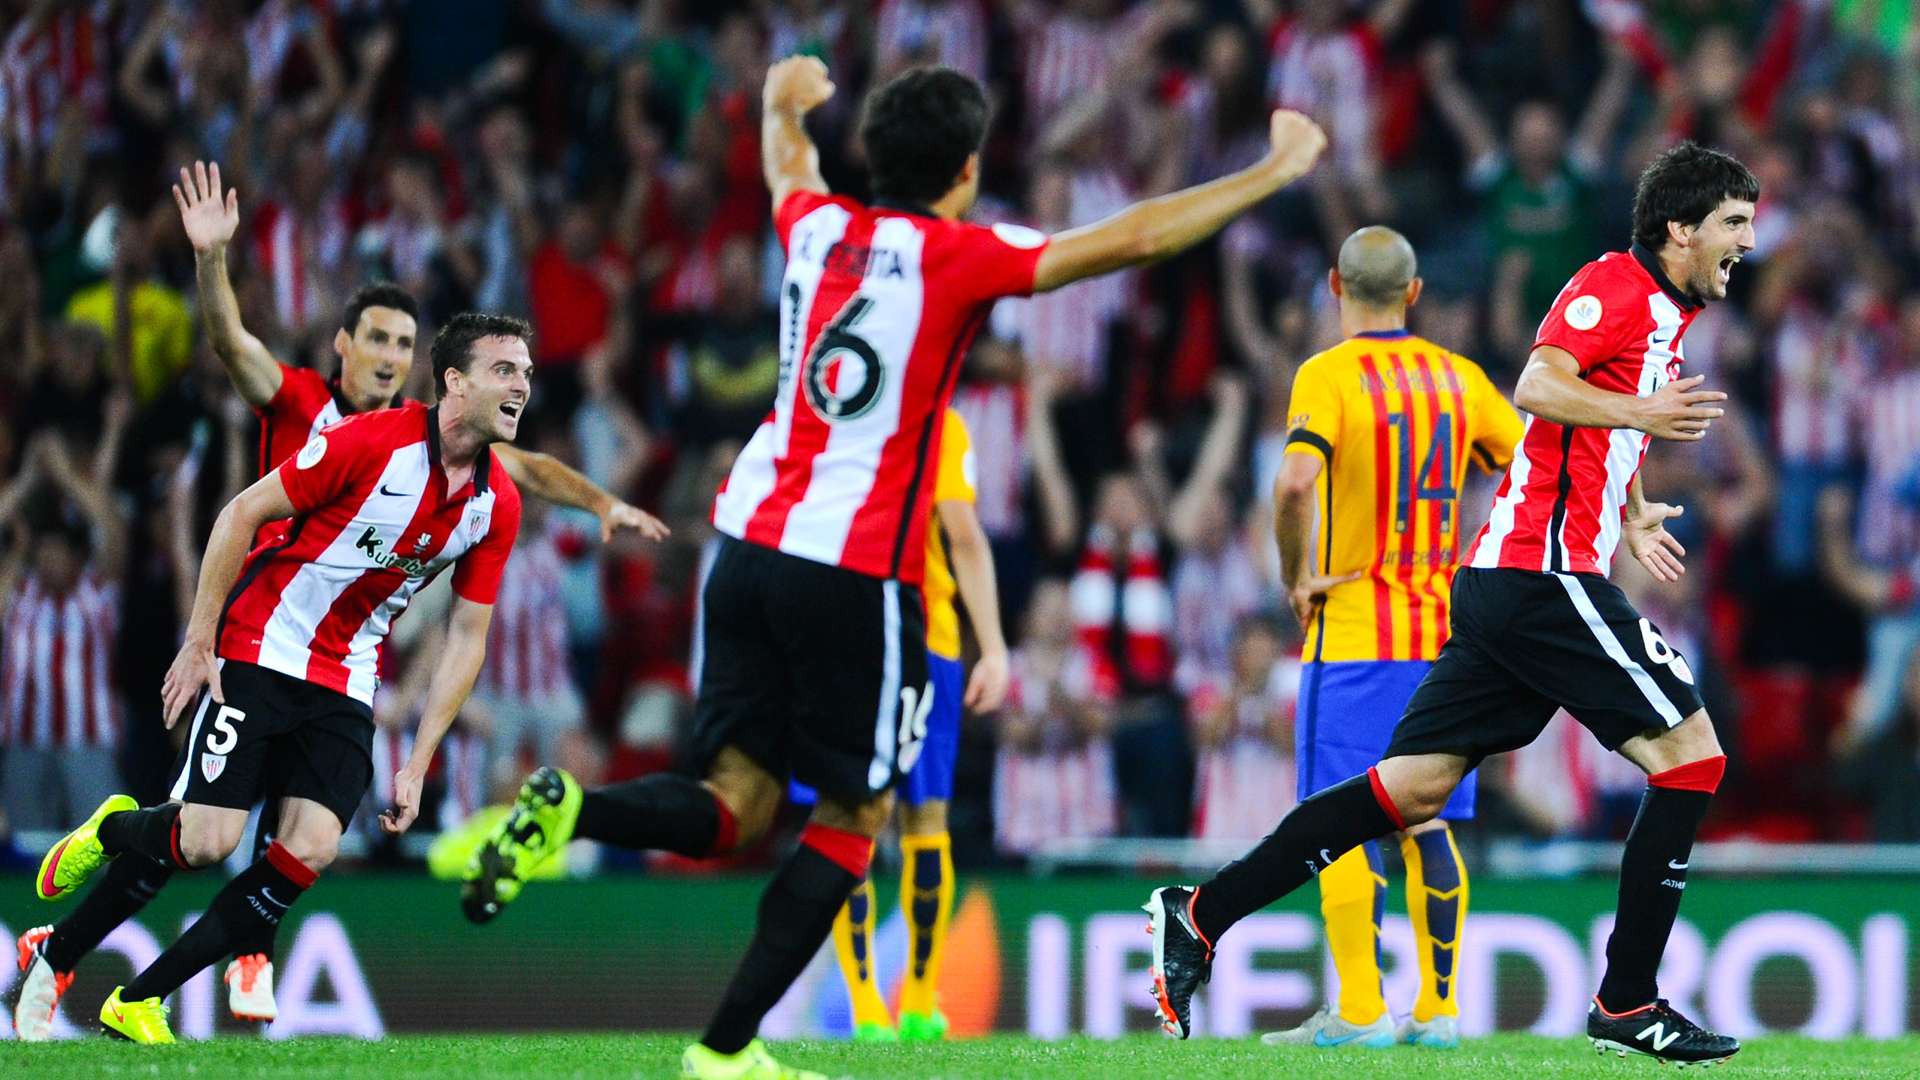 BILBAO, SPAIN - AUGUST 14: Mikel San Jose (R) of Athletic Club celebrates after scoring the opening goalduring the Spanish Super Cup first leg match between FC Barcelona and Athletic Club at San Mames Stadium on August 14, 2015 in Bilbao, Spain. (Photo by David Ramos/Getty Images)